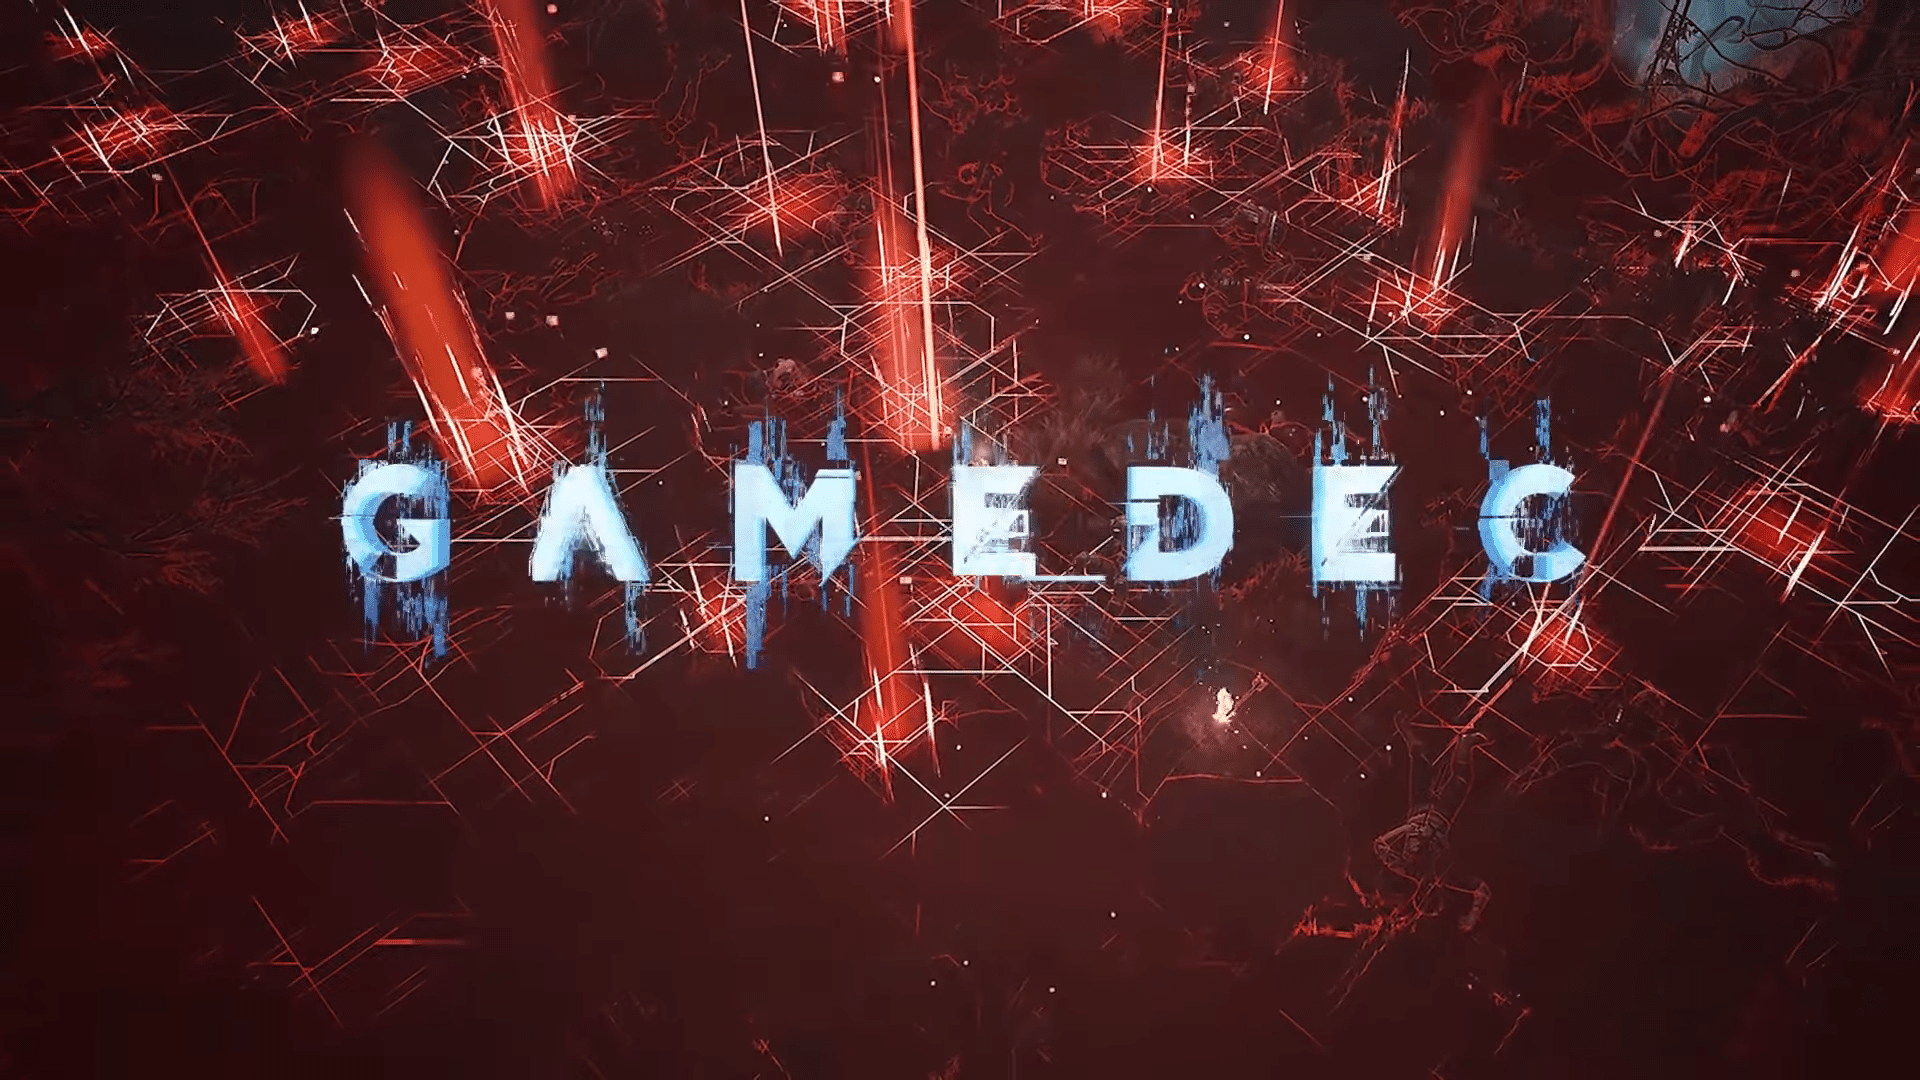 Gamedec confirmed and launching 2021